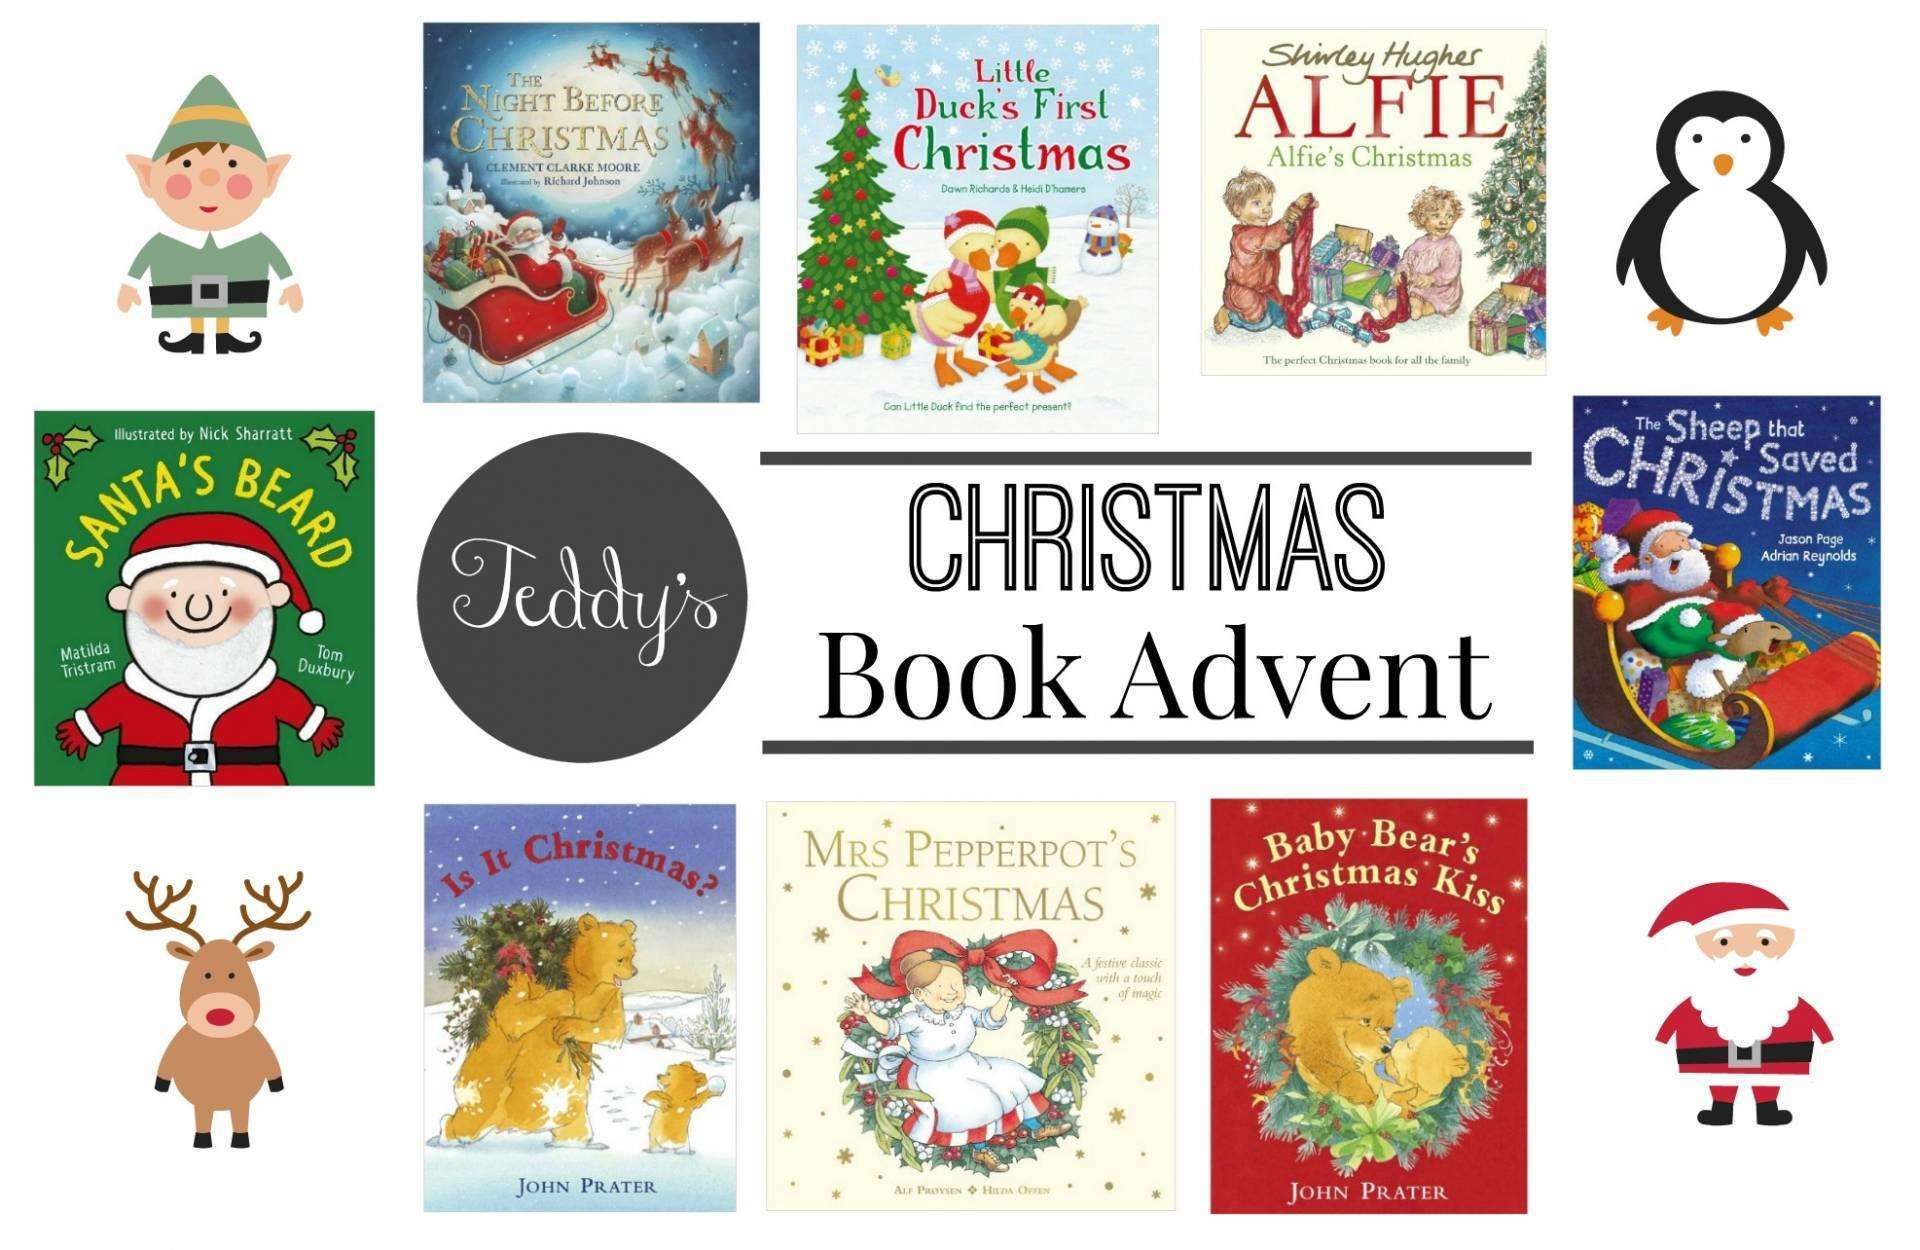 Christmas Book Advent, Book Advent Featured%, lifestyle%